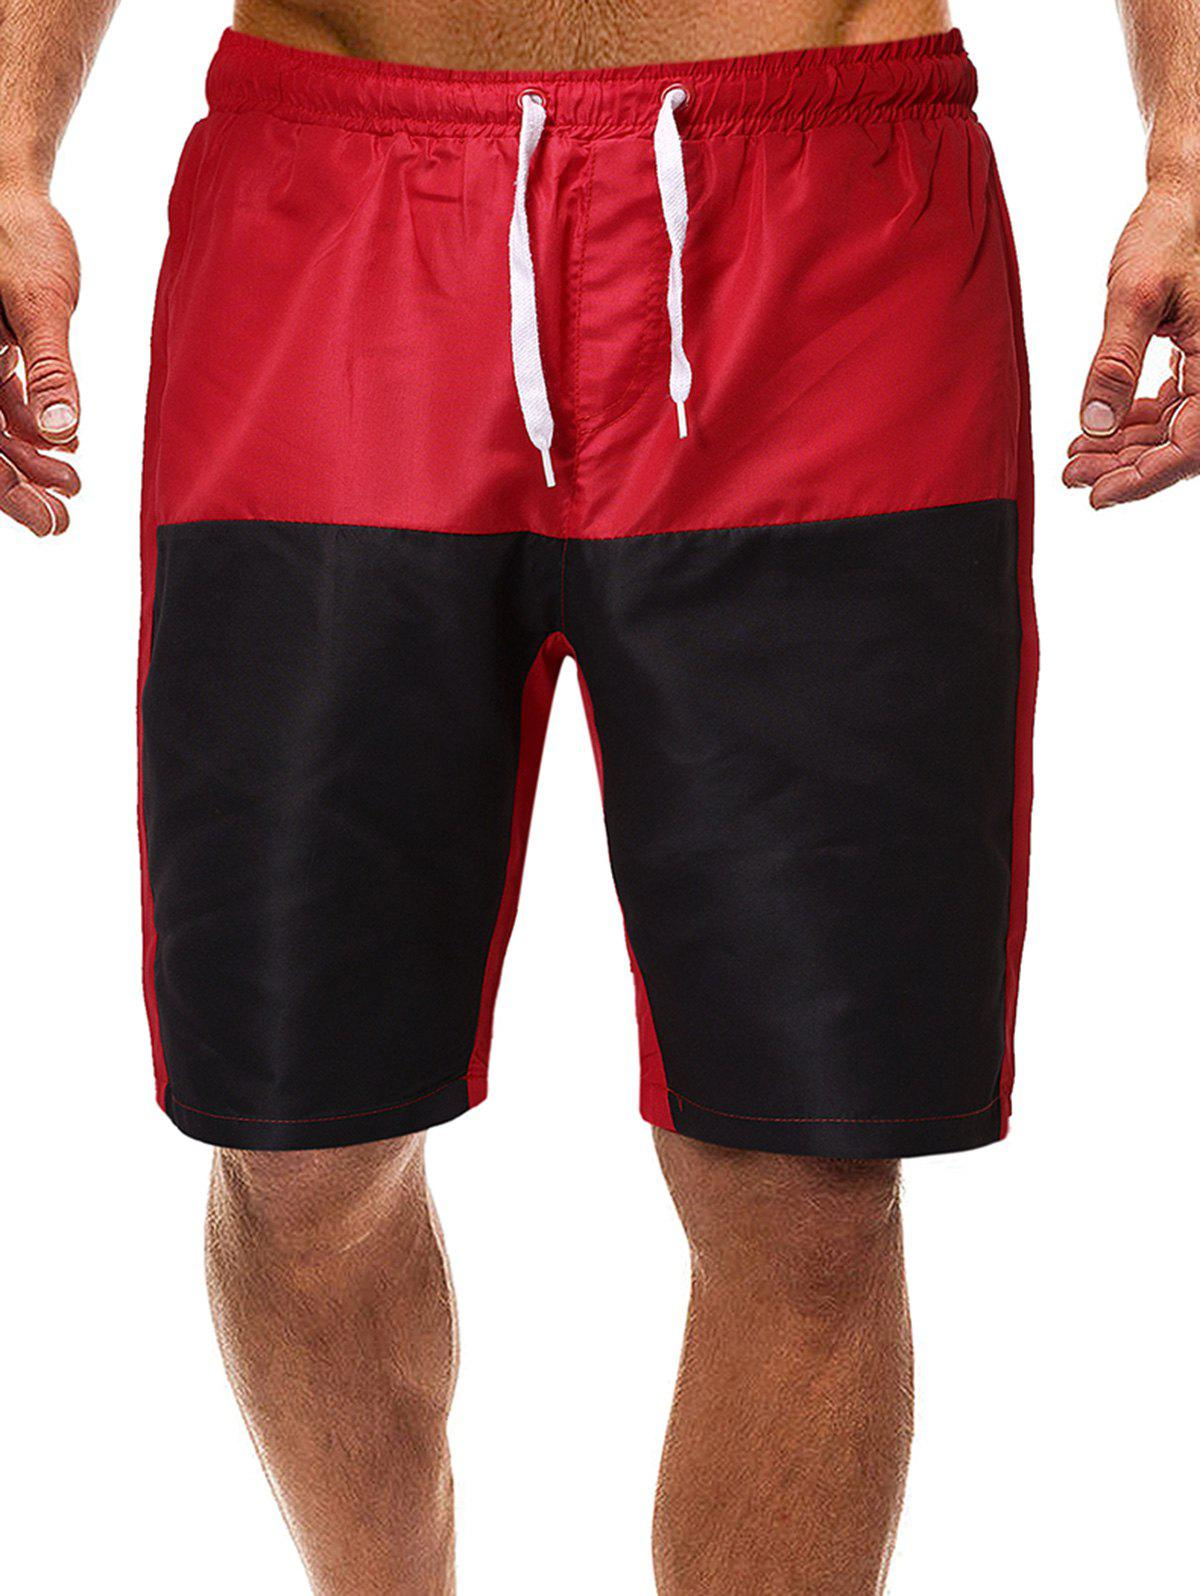 Contrast Color Drawstring Lounge Shorts - RED L